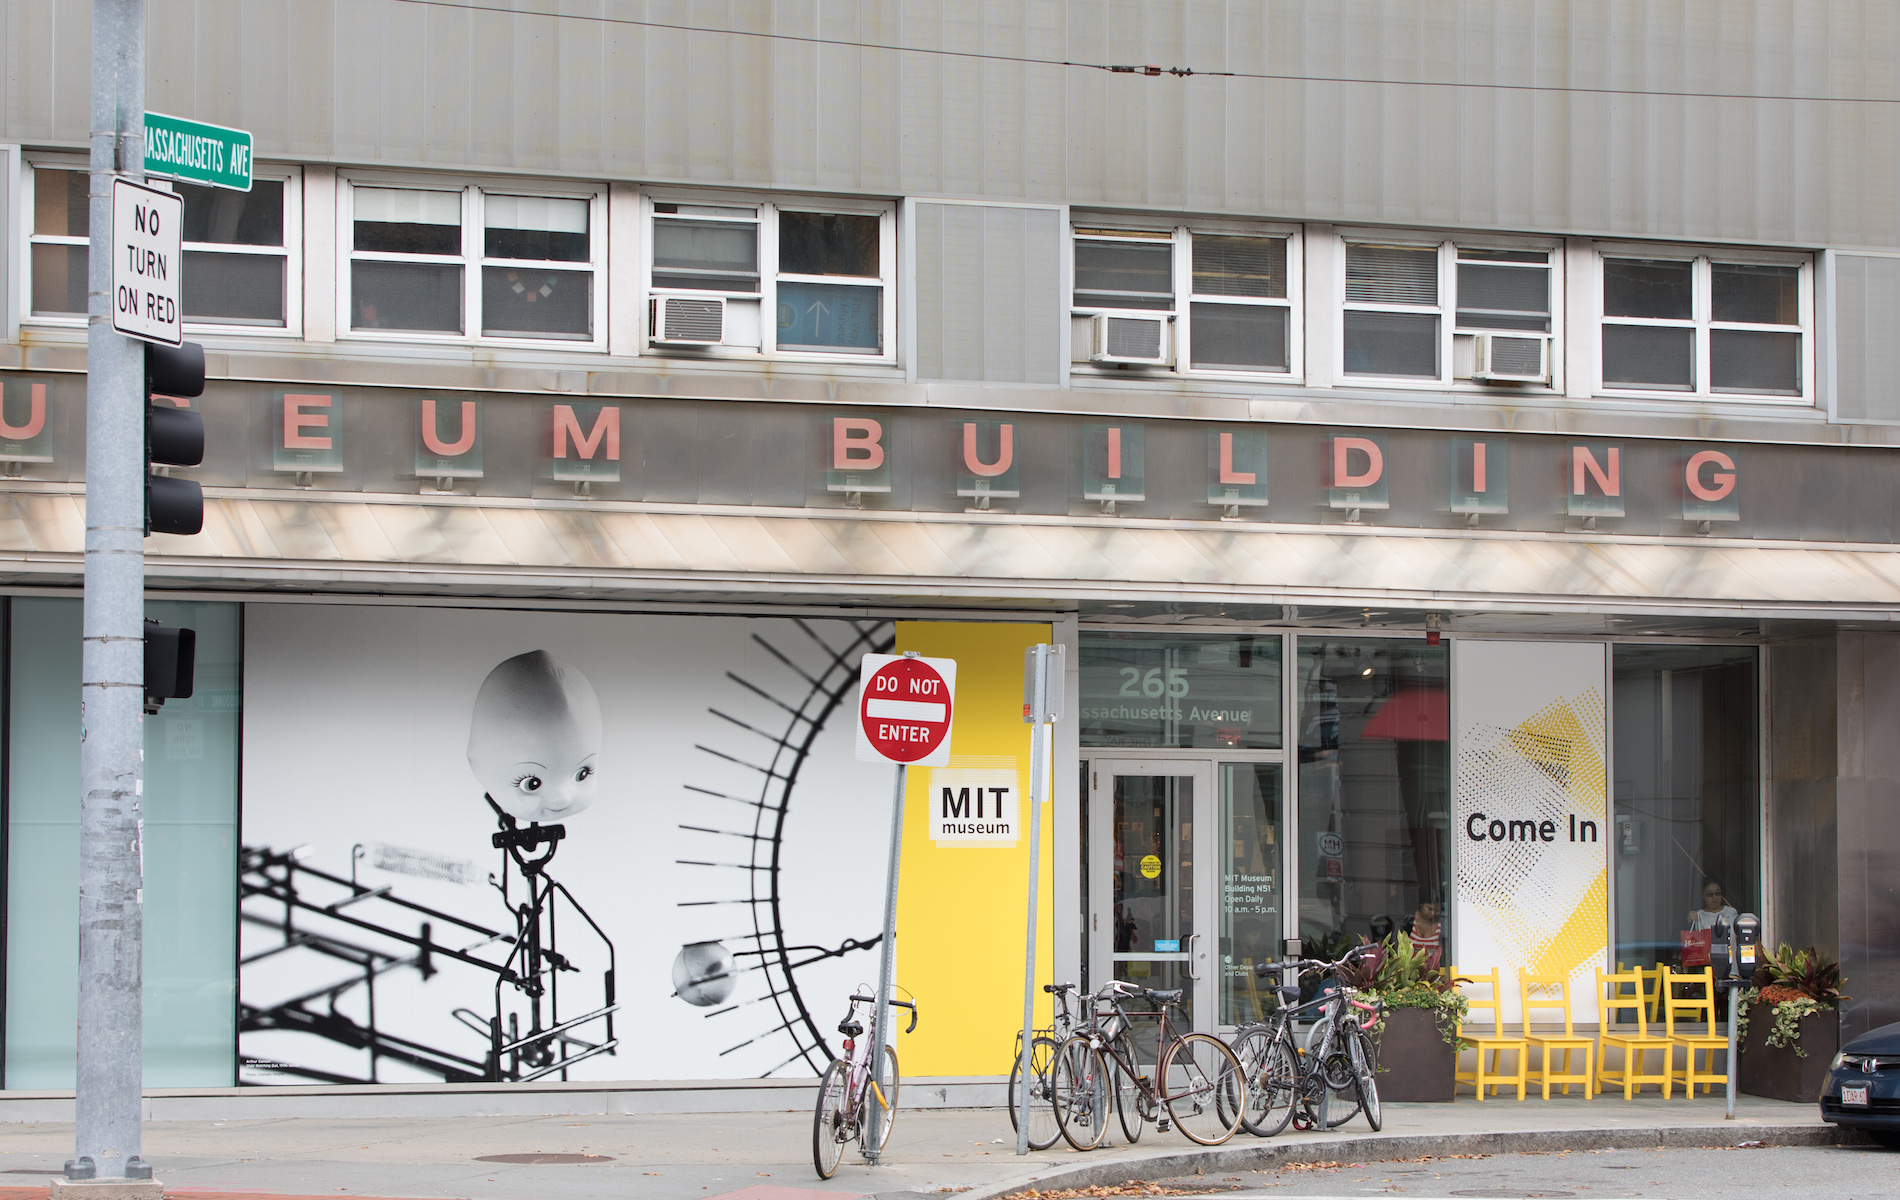 grey building that says museum with yellow sign next to door